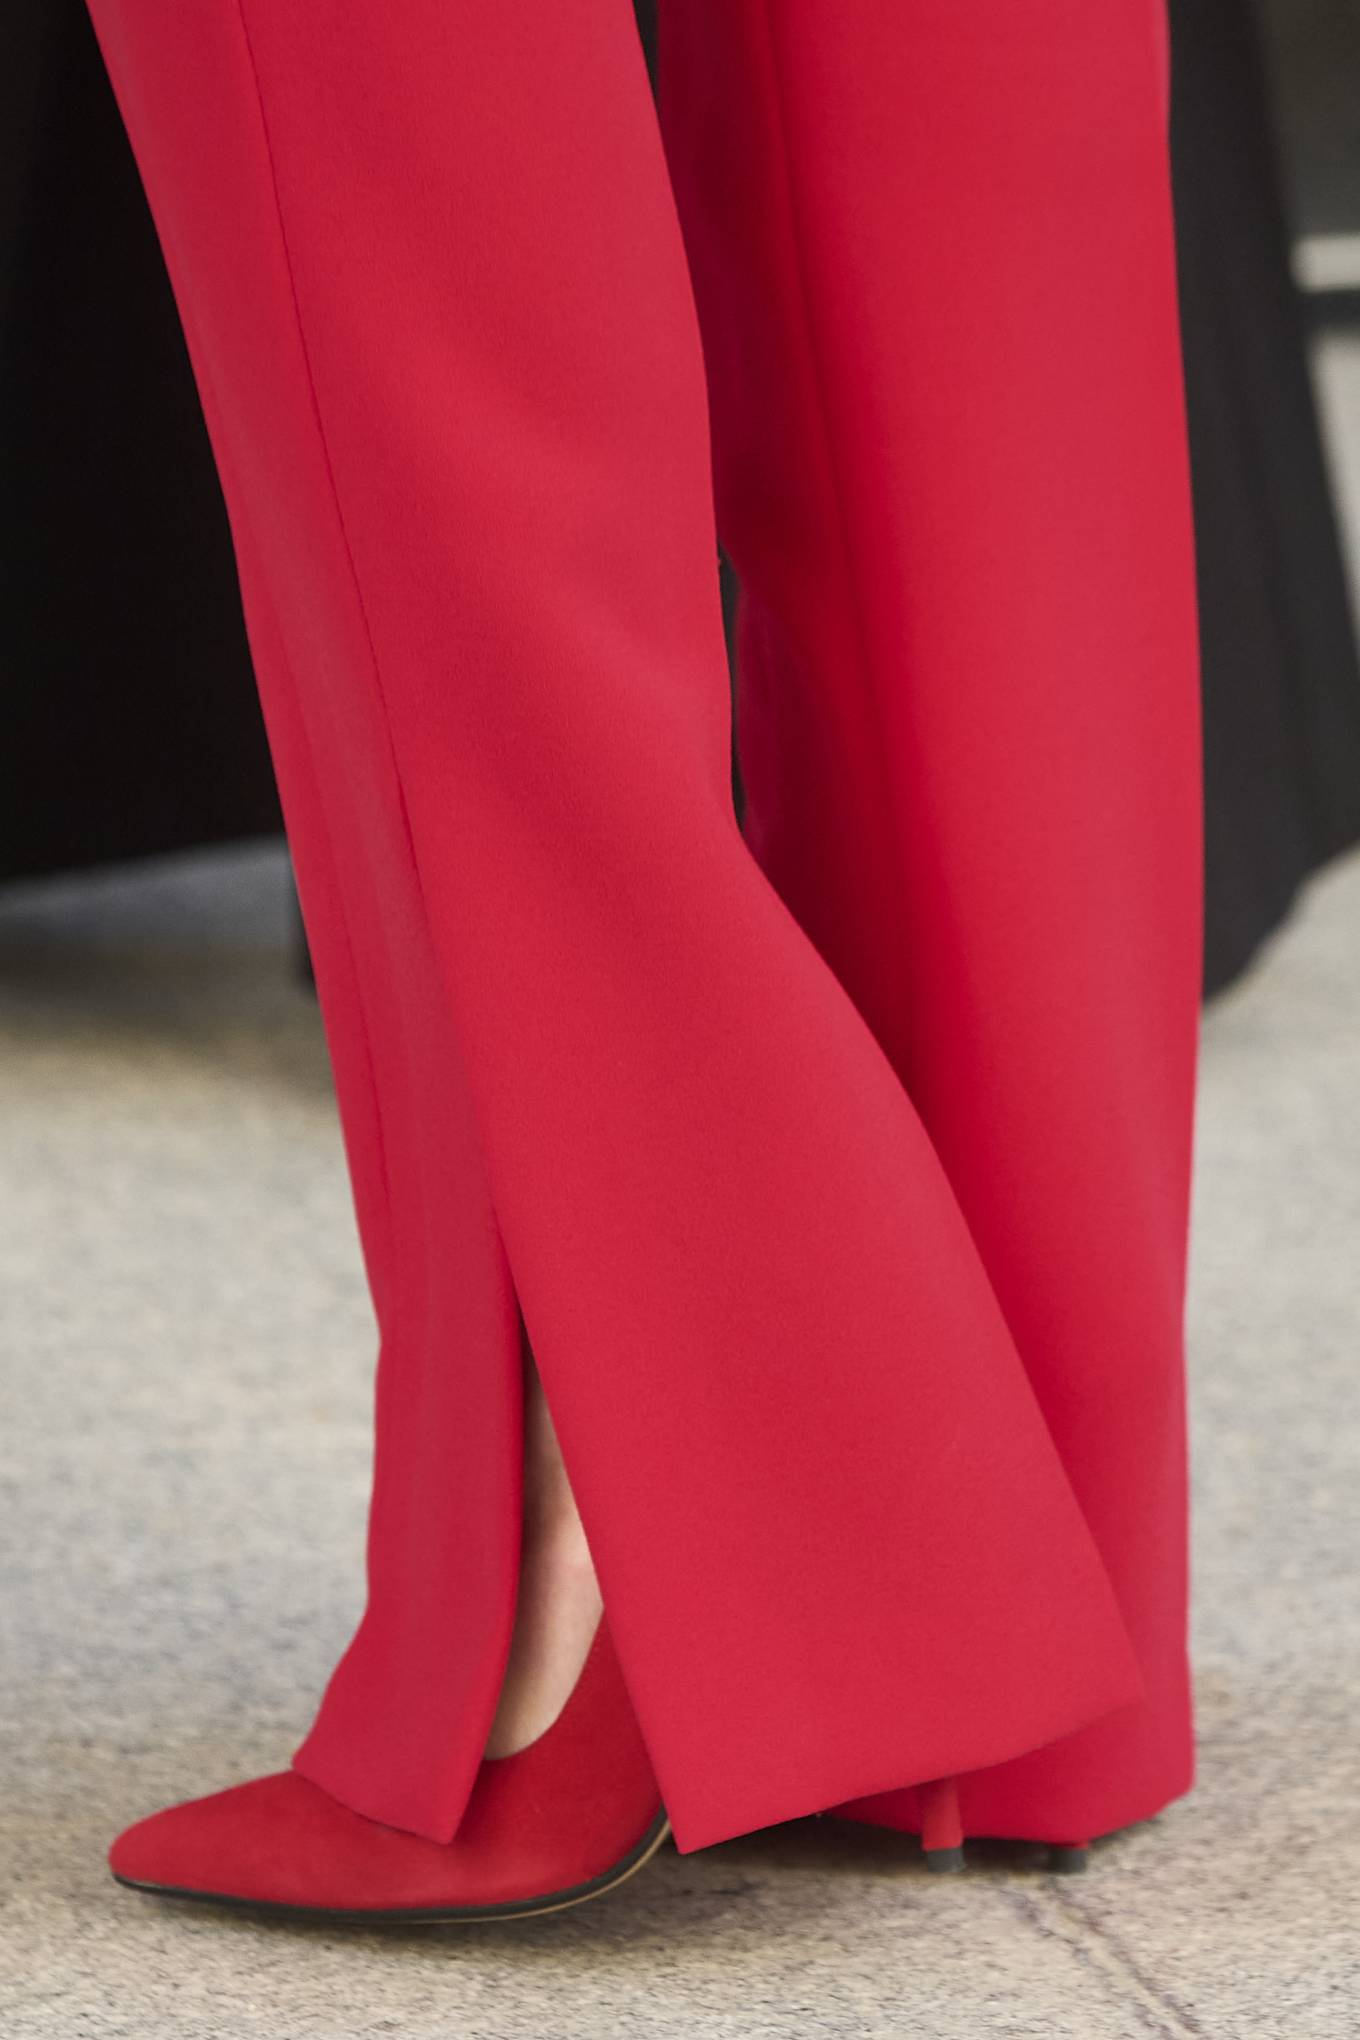 Queen Letizia Of Spain 2021 : Queen Letizia of Spain – In all red attends the tribute to the figure of Clara Campoamor in Madrid-08